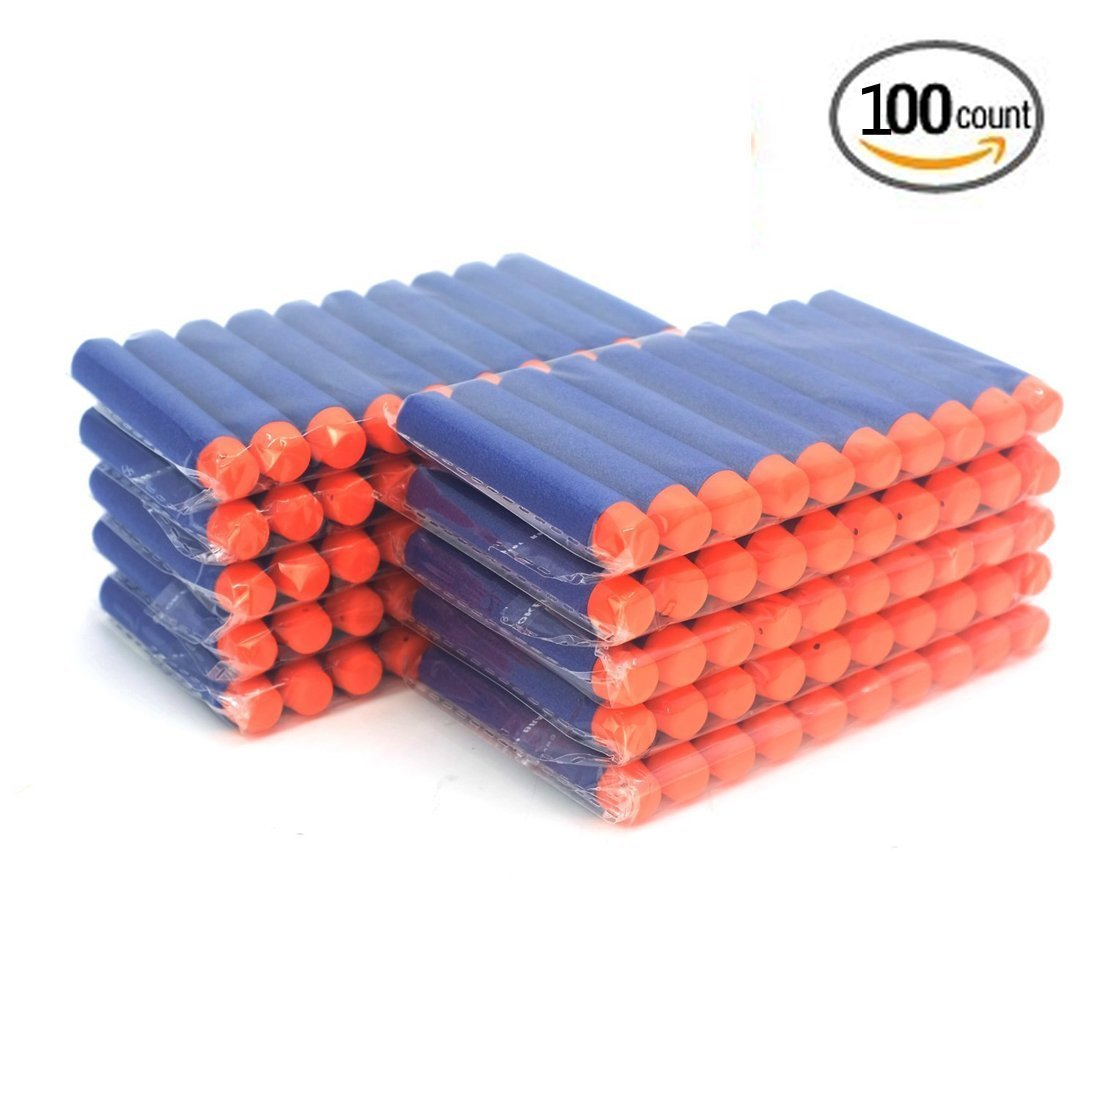 100-Dart Refill Pack Outdoor Toy Gun Bullet Darts Round Head Foam Darts for Nerf N-strike Elite Series (Blue)